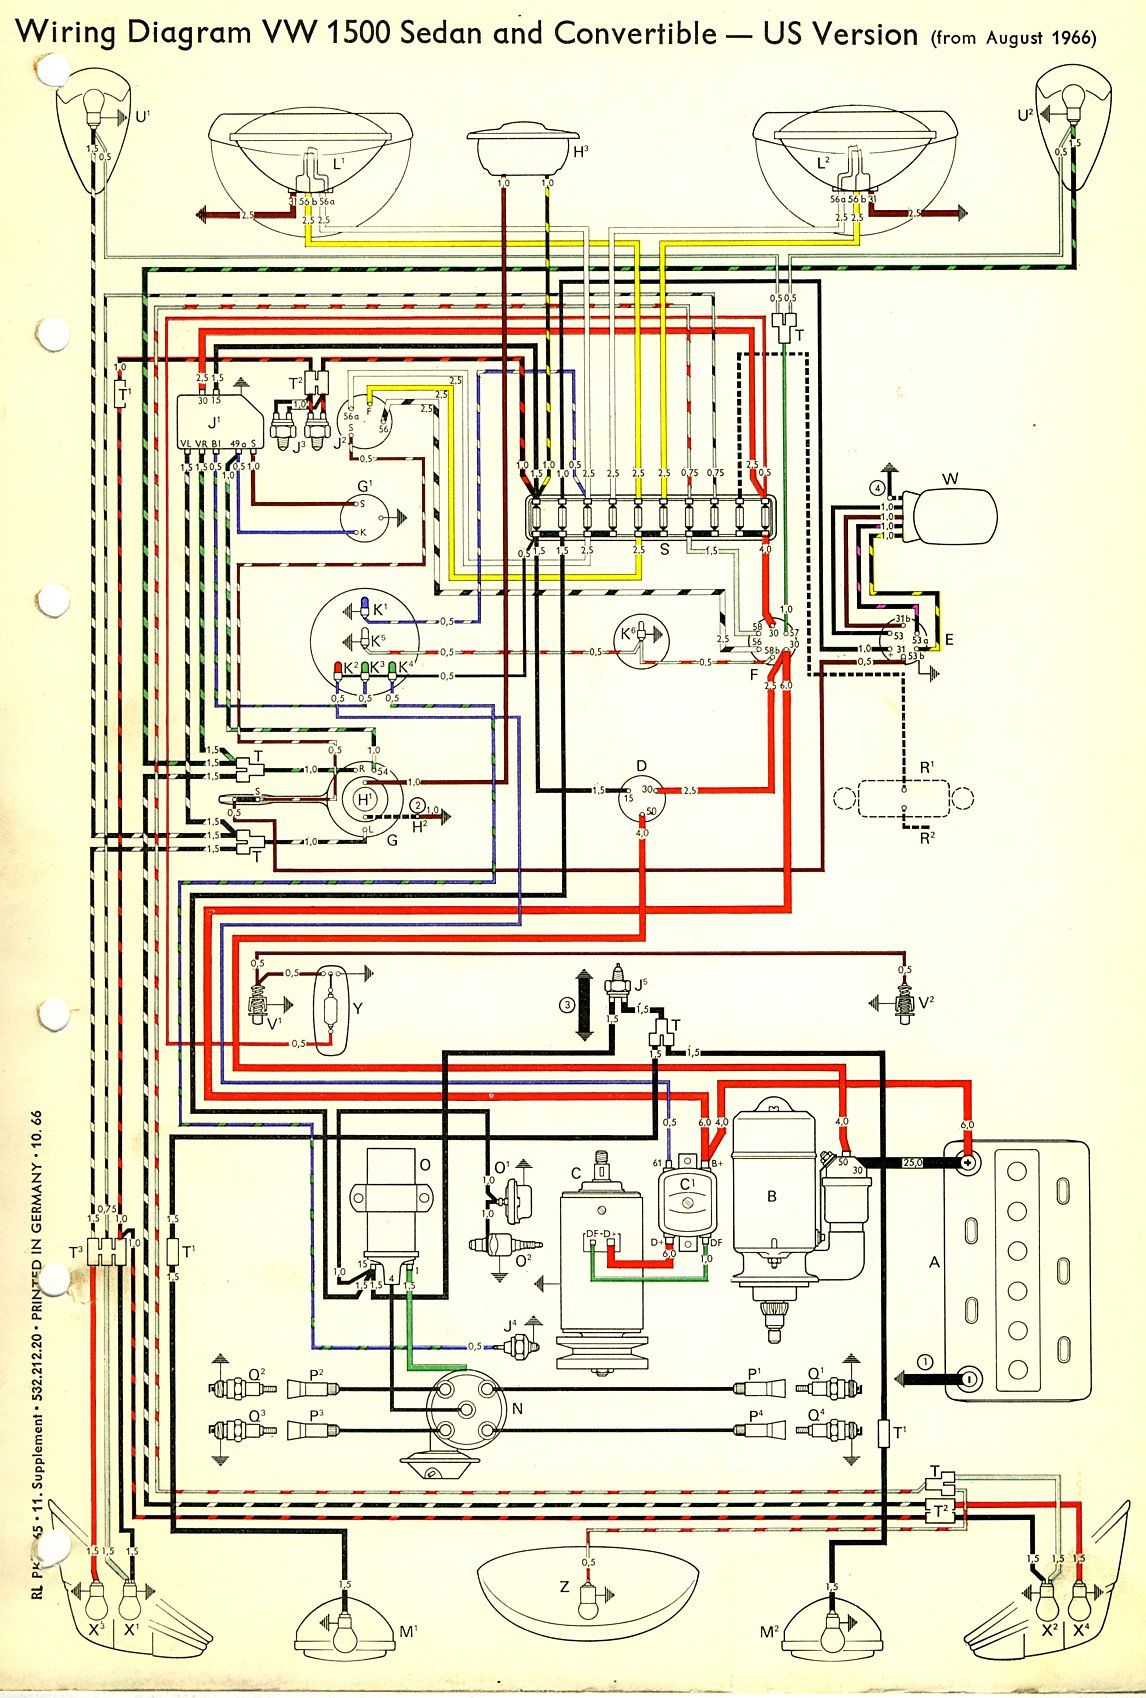 vw engine wiring to back of 67 wiring diagrams Vw Engine Wiring To Back Of 67 vw engine wiring to back of 67 wiring